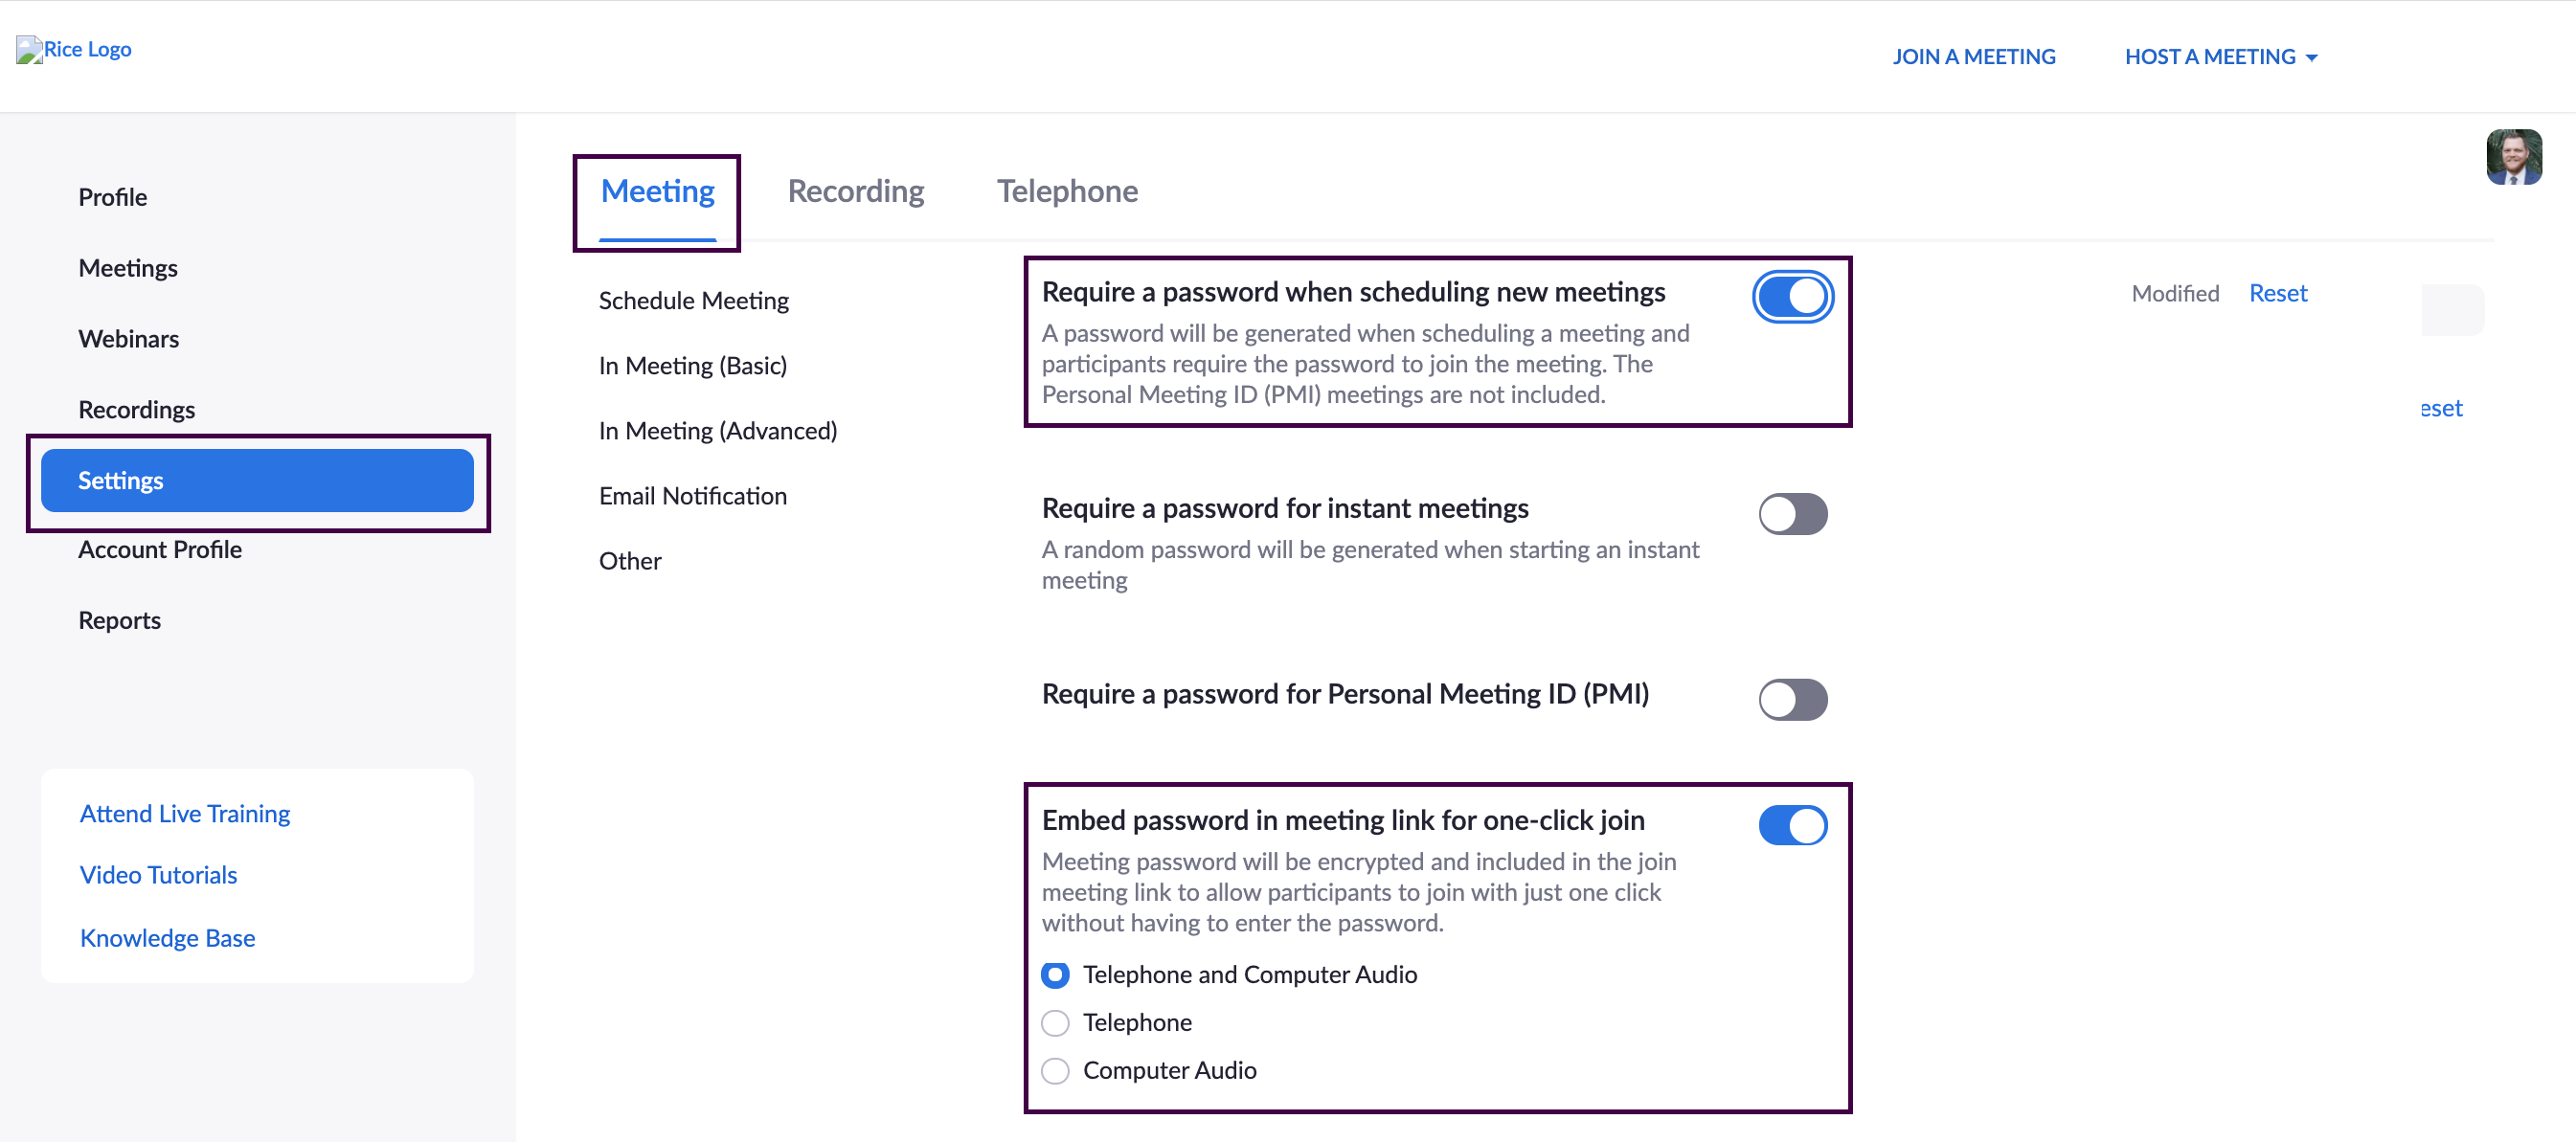 Zoom meeting settings with 'Require a password' and 'Embed password' options enabled.